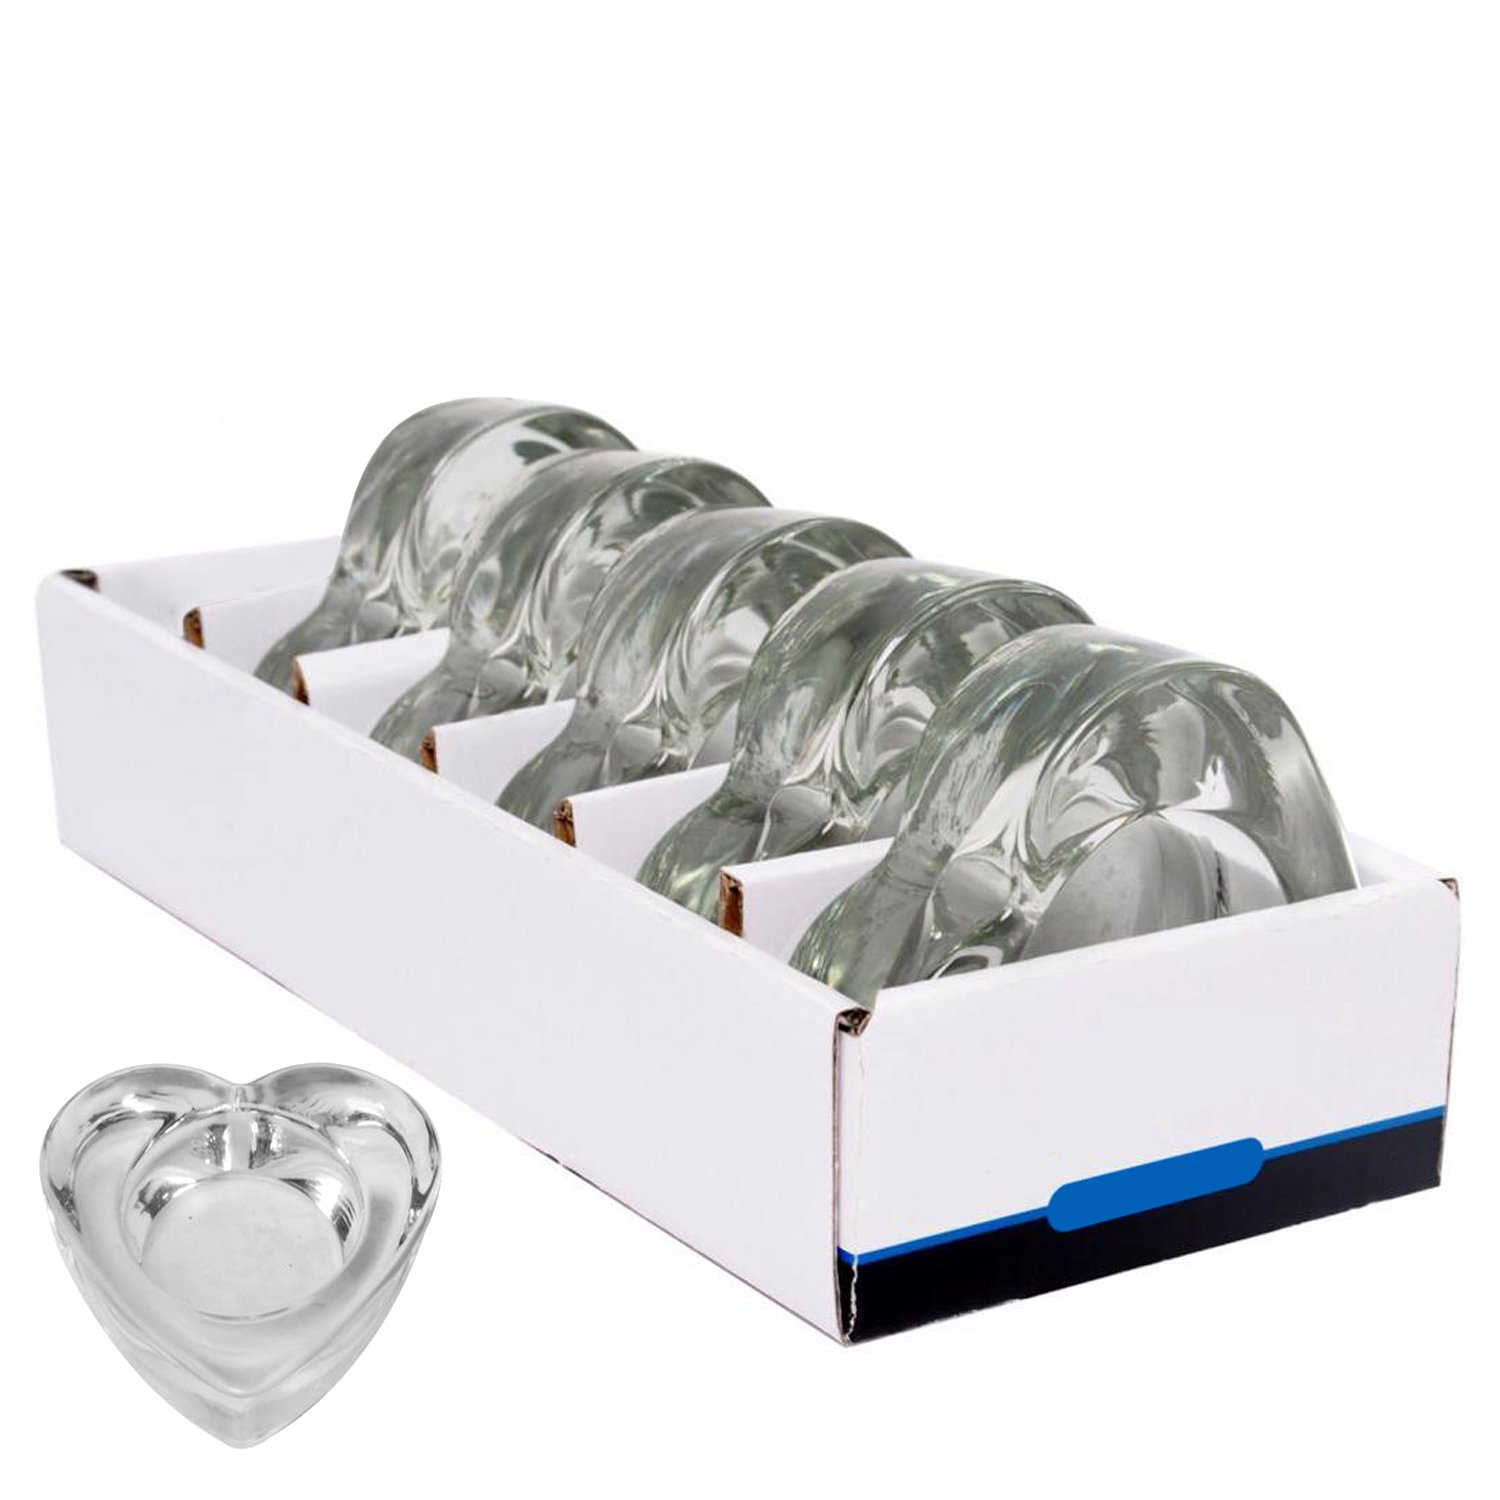 Hosley's Set of 6 Chunky Clear Glass Tea Light Holders. Heart Shape, Ideal Gift for Weddings, Party, Votive Candle Gardens, spa, aromatherapy, Valentine, Country Bulk Buy O7 HG Global